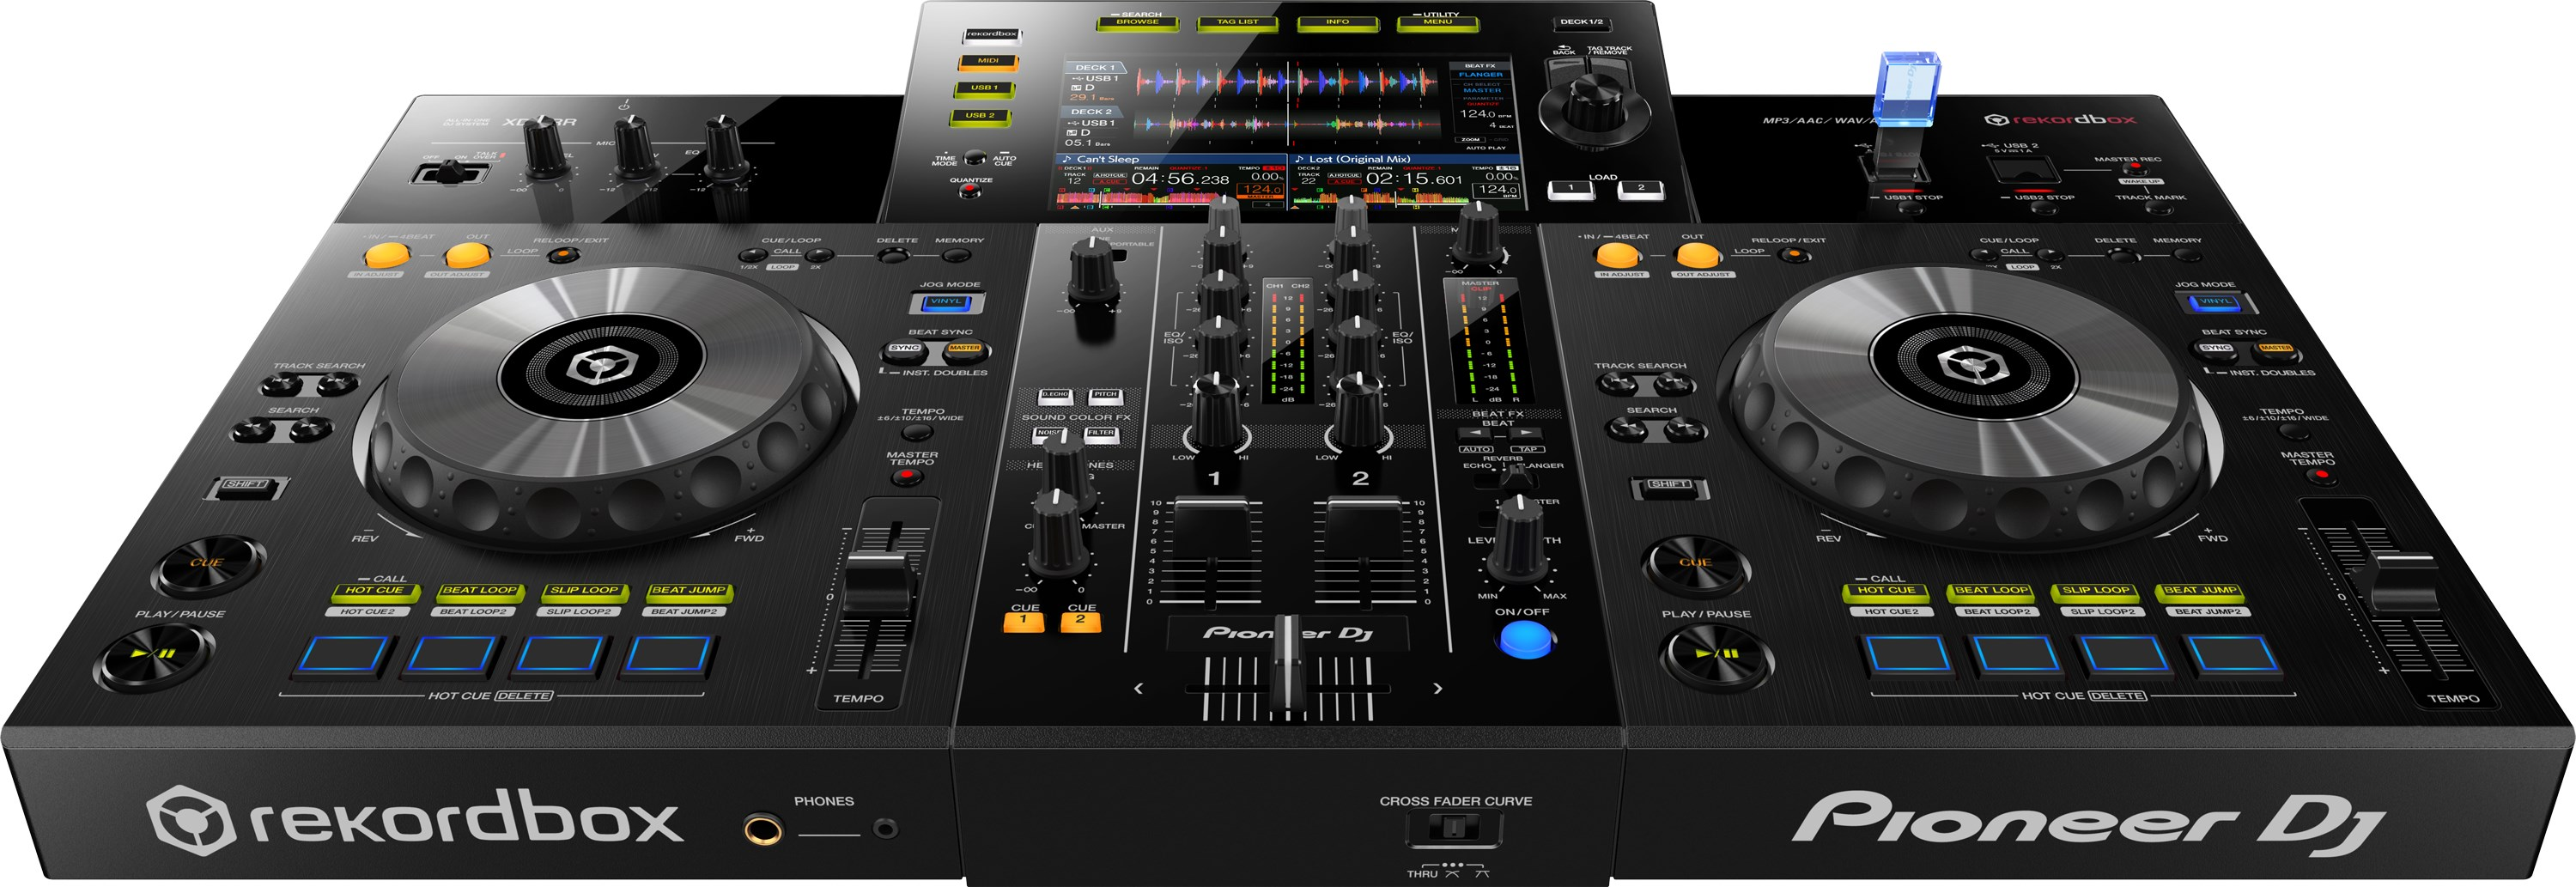 Pioneer XDJ-RR all-in-one DJ system